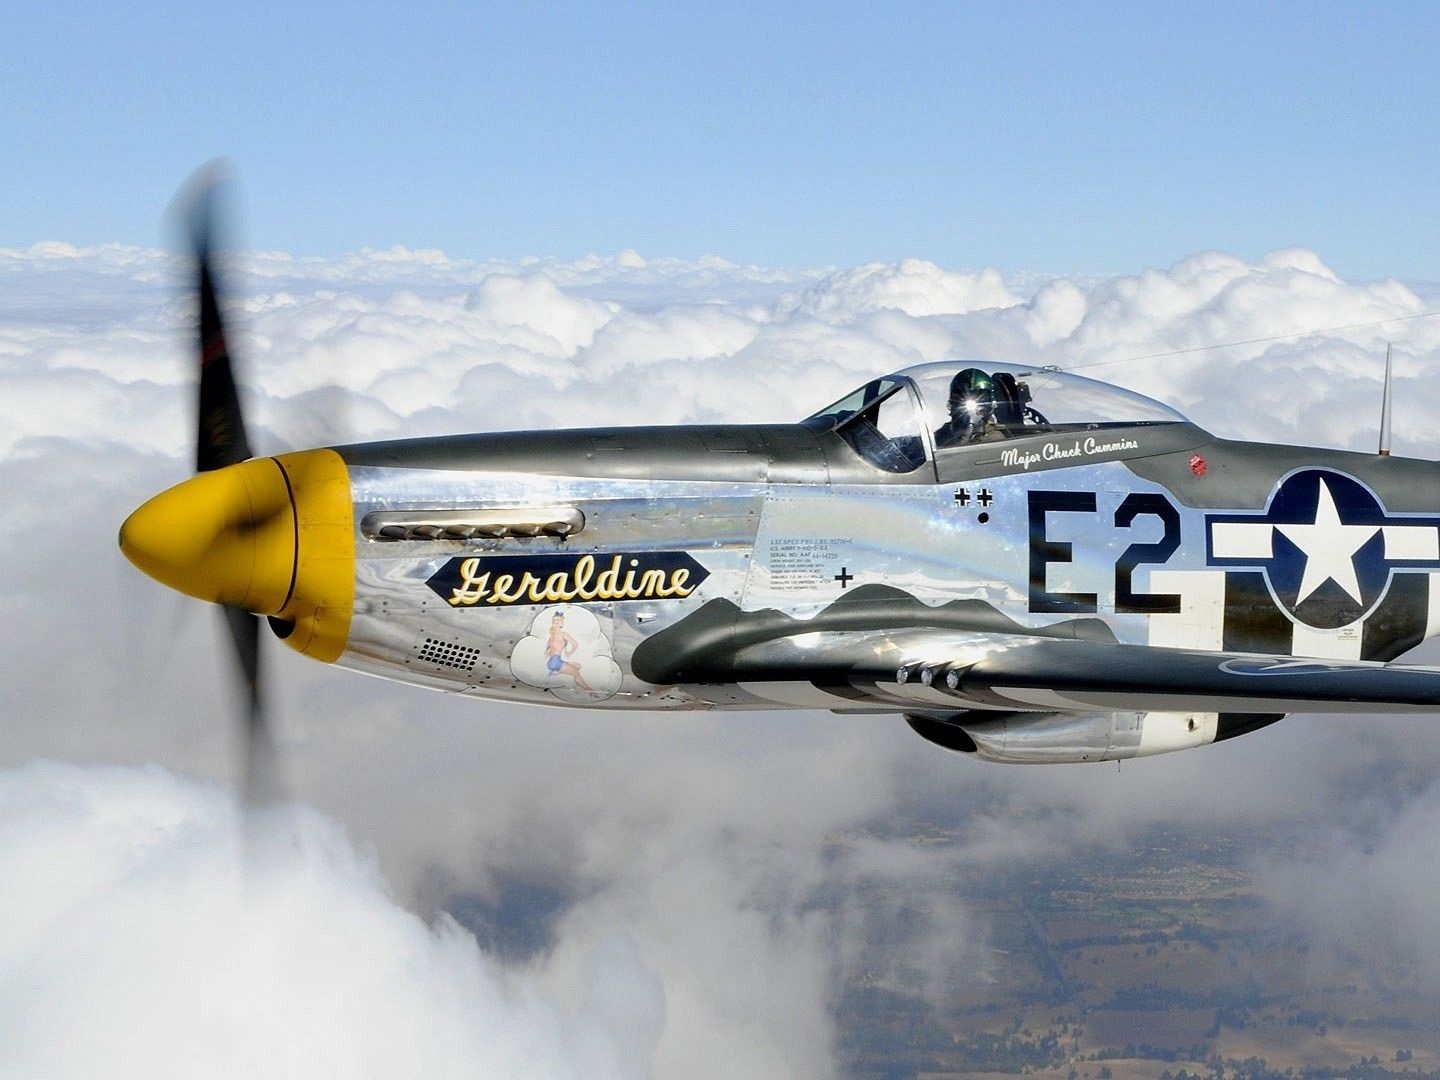 north-american-p-51-mustang-wallpapers-29097-9816653.jpg